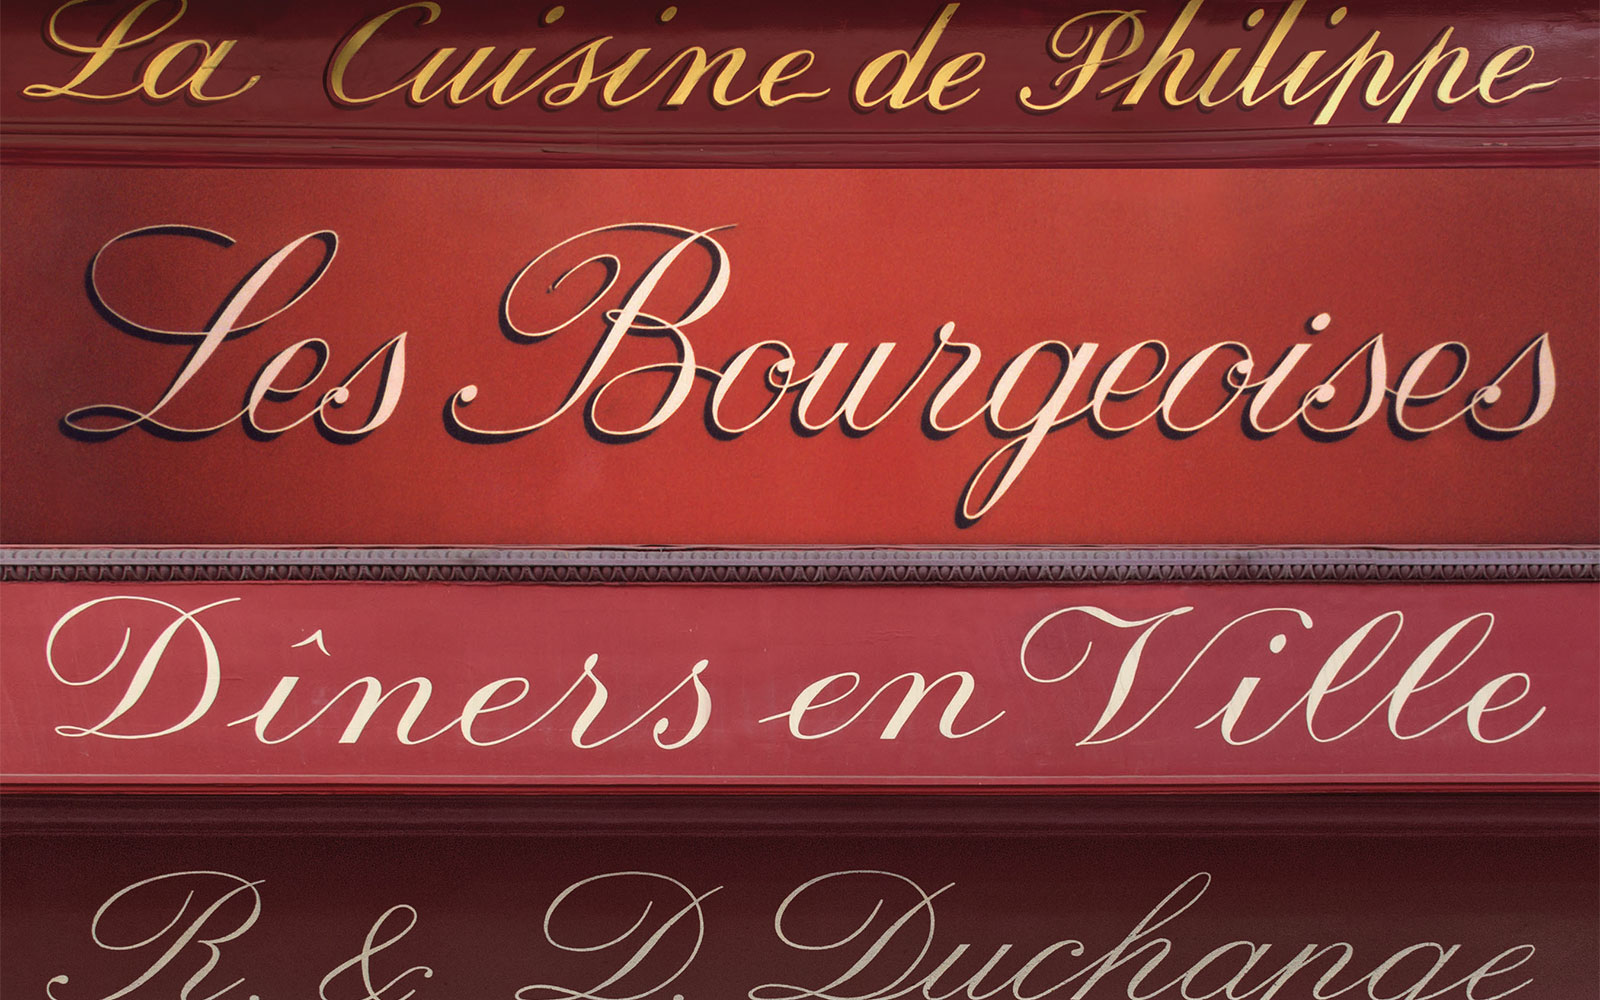 In Photos: 40 Years of Gorgeous Parisian Typography